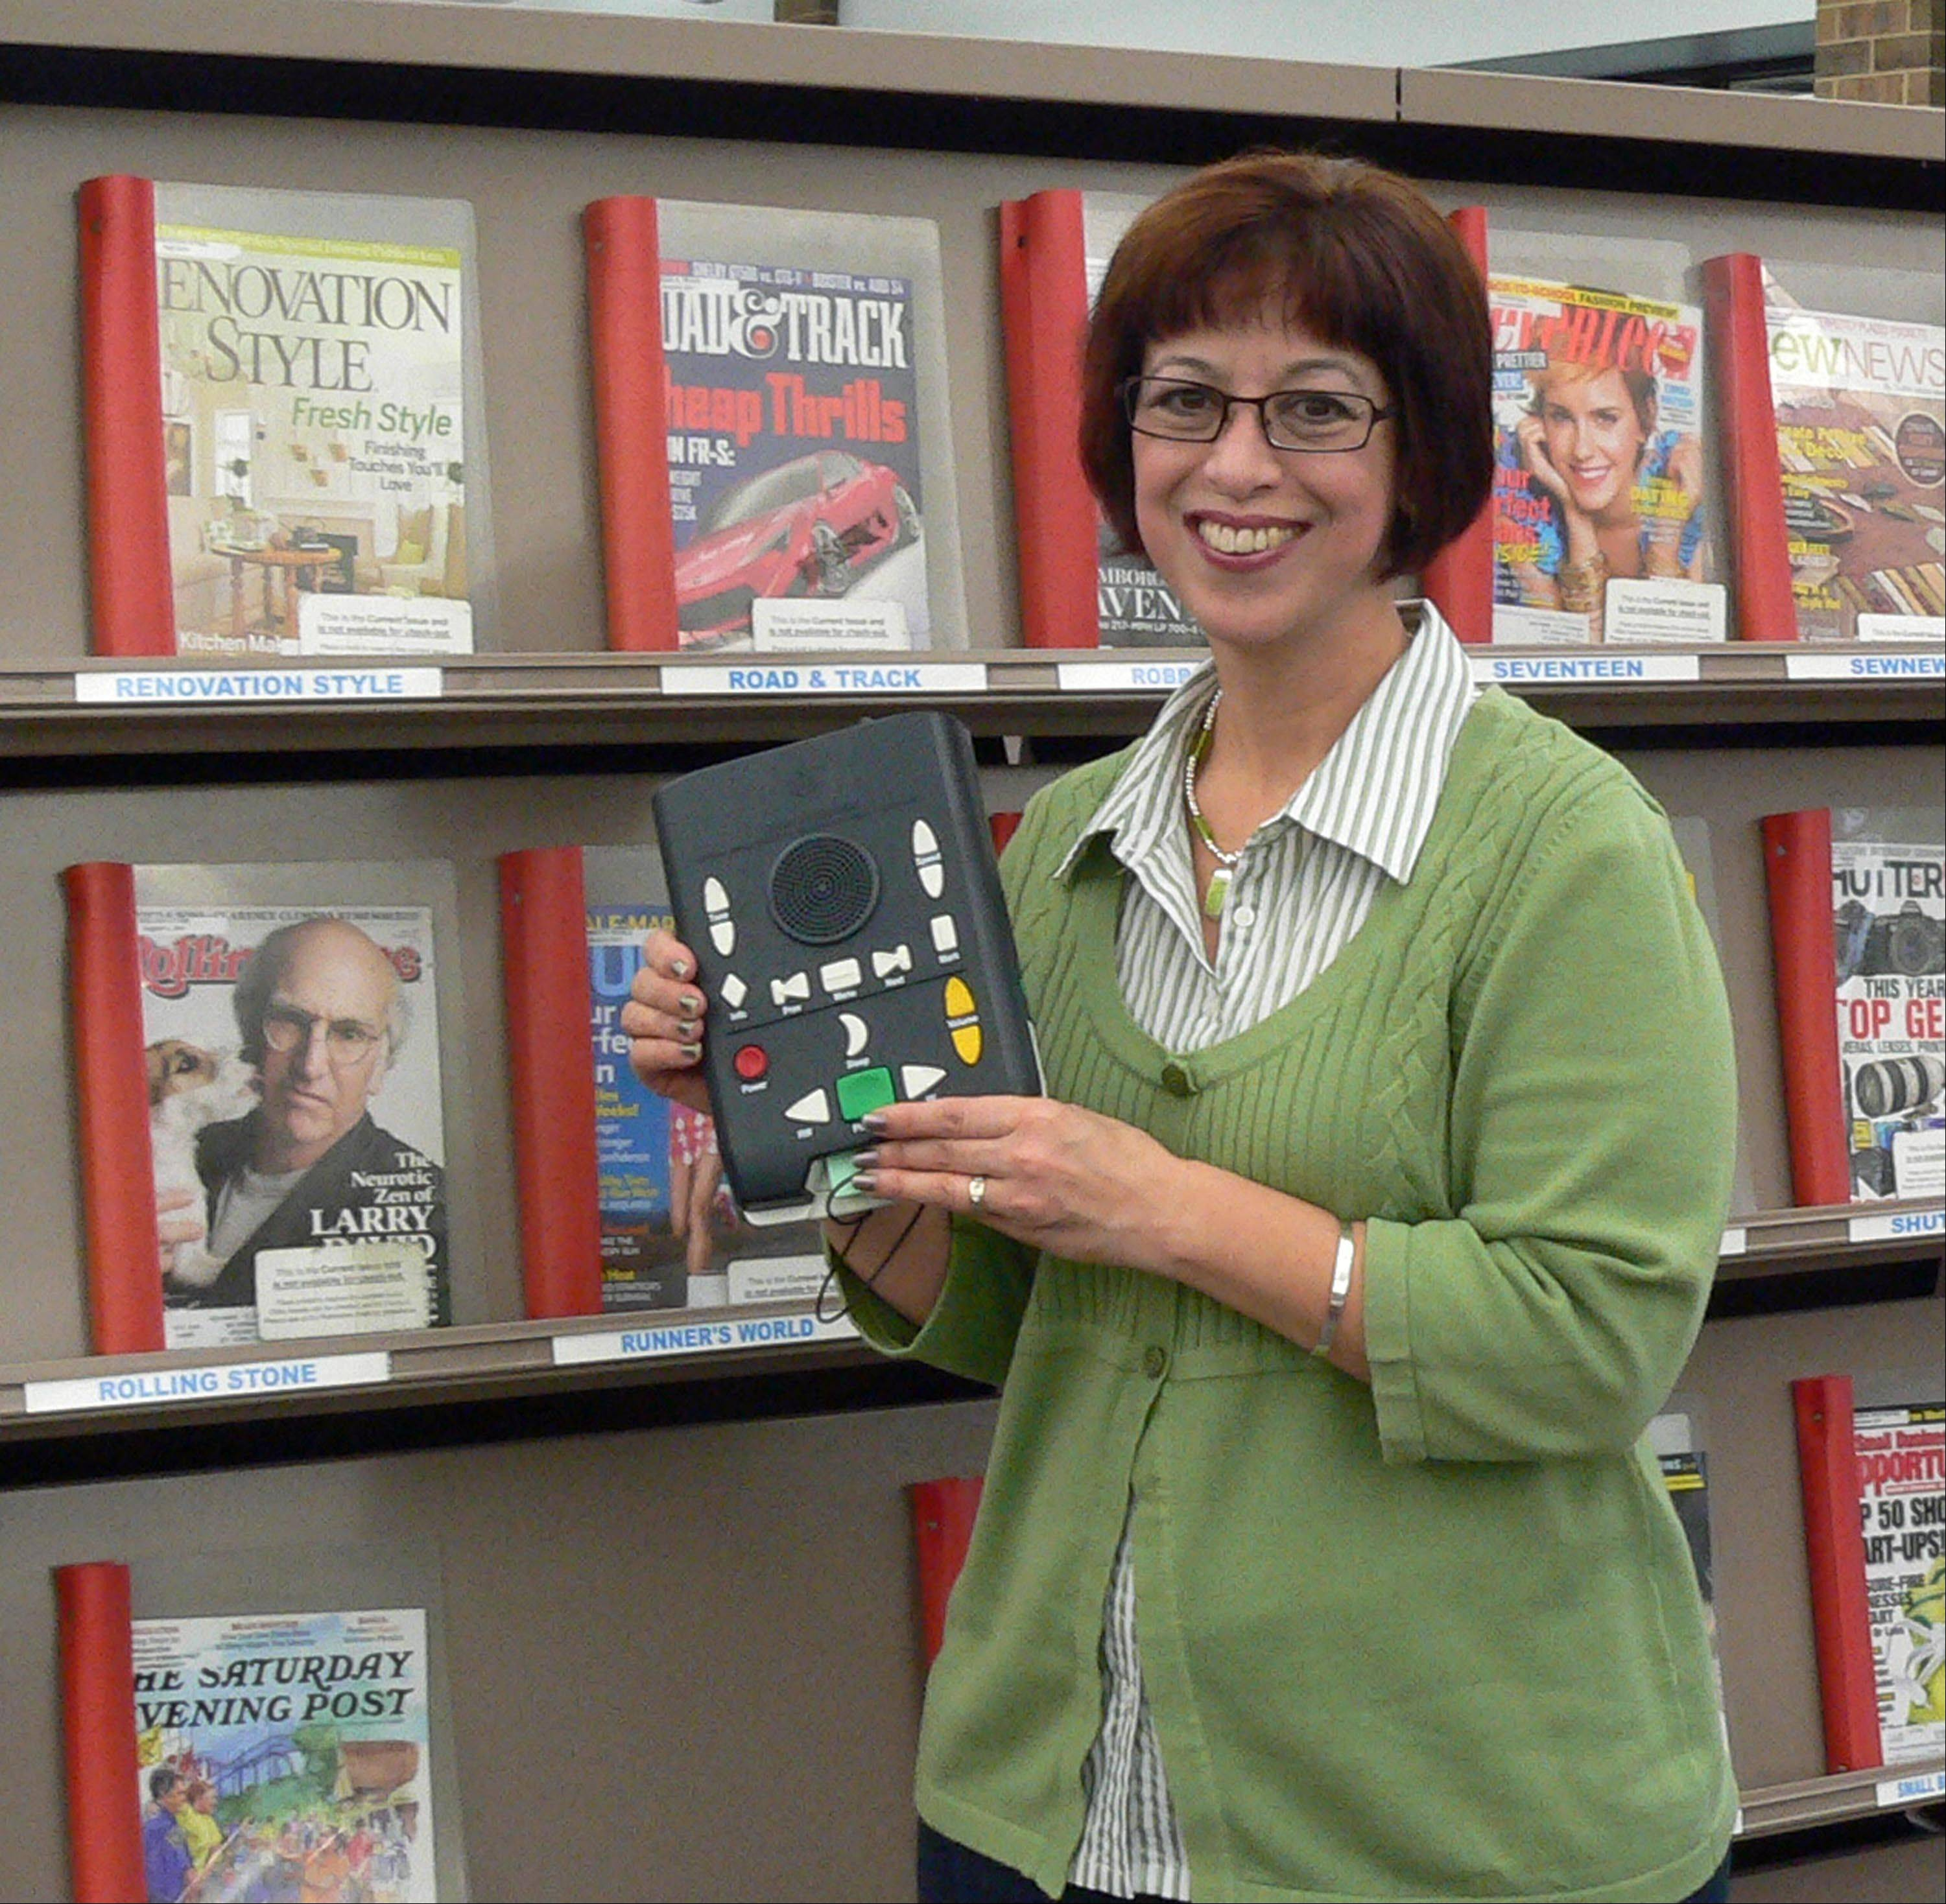 Vicki Ann Brodeur, coordinator of Naperville Public Library�s special services, shows the digital talking books device that allows the visually impaired and physically disabled to download books and magazines